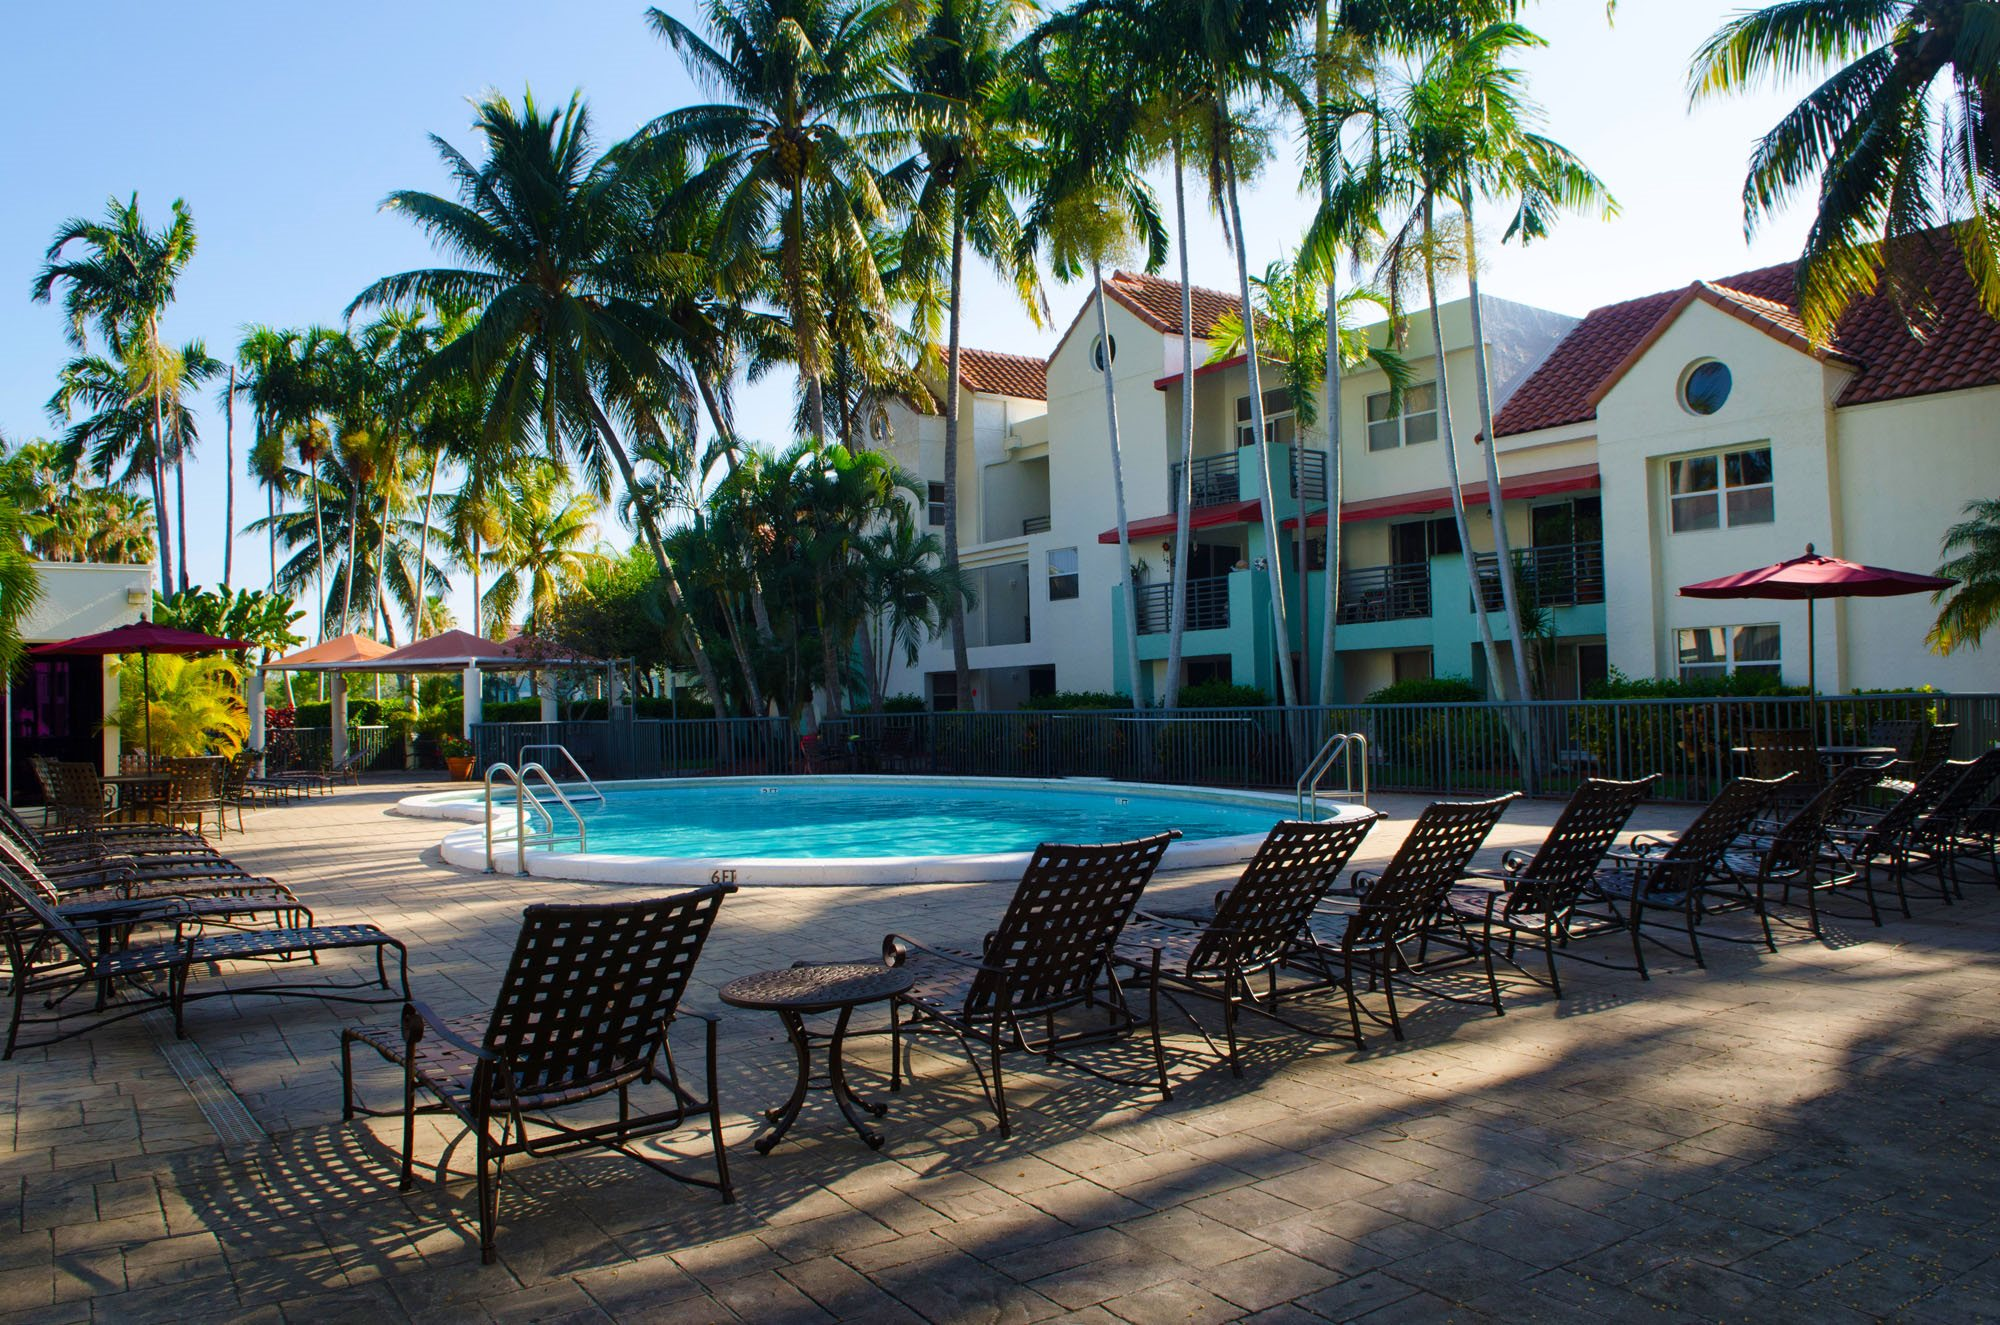 Pool Side Relaxing Area at Sheridan Ocean Club, Dania Beach, FL,33004